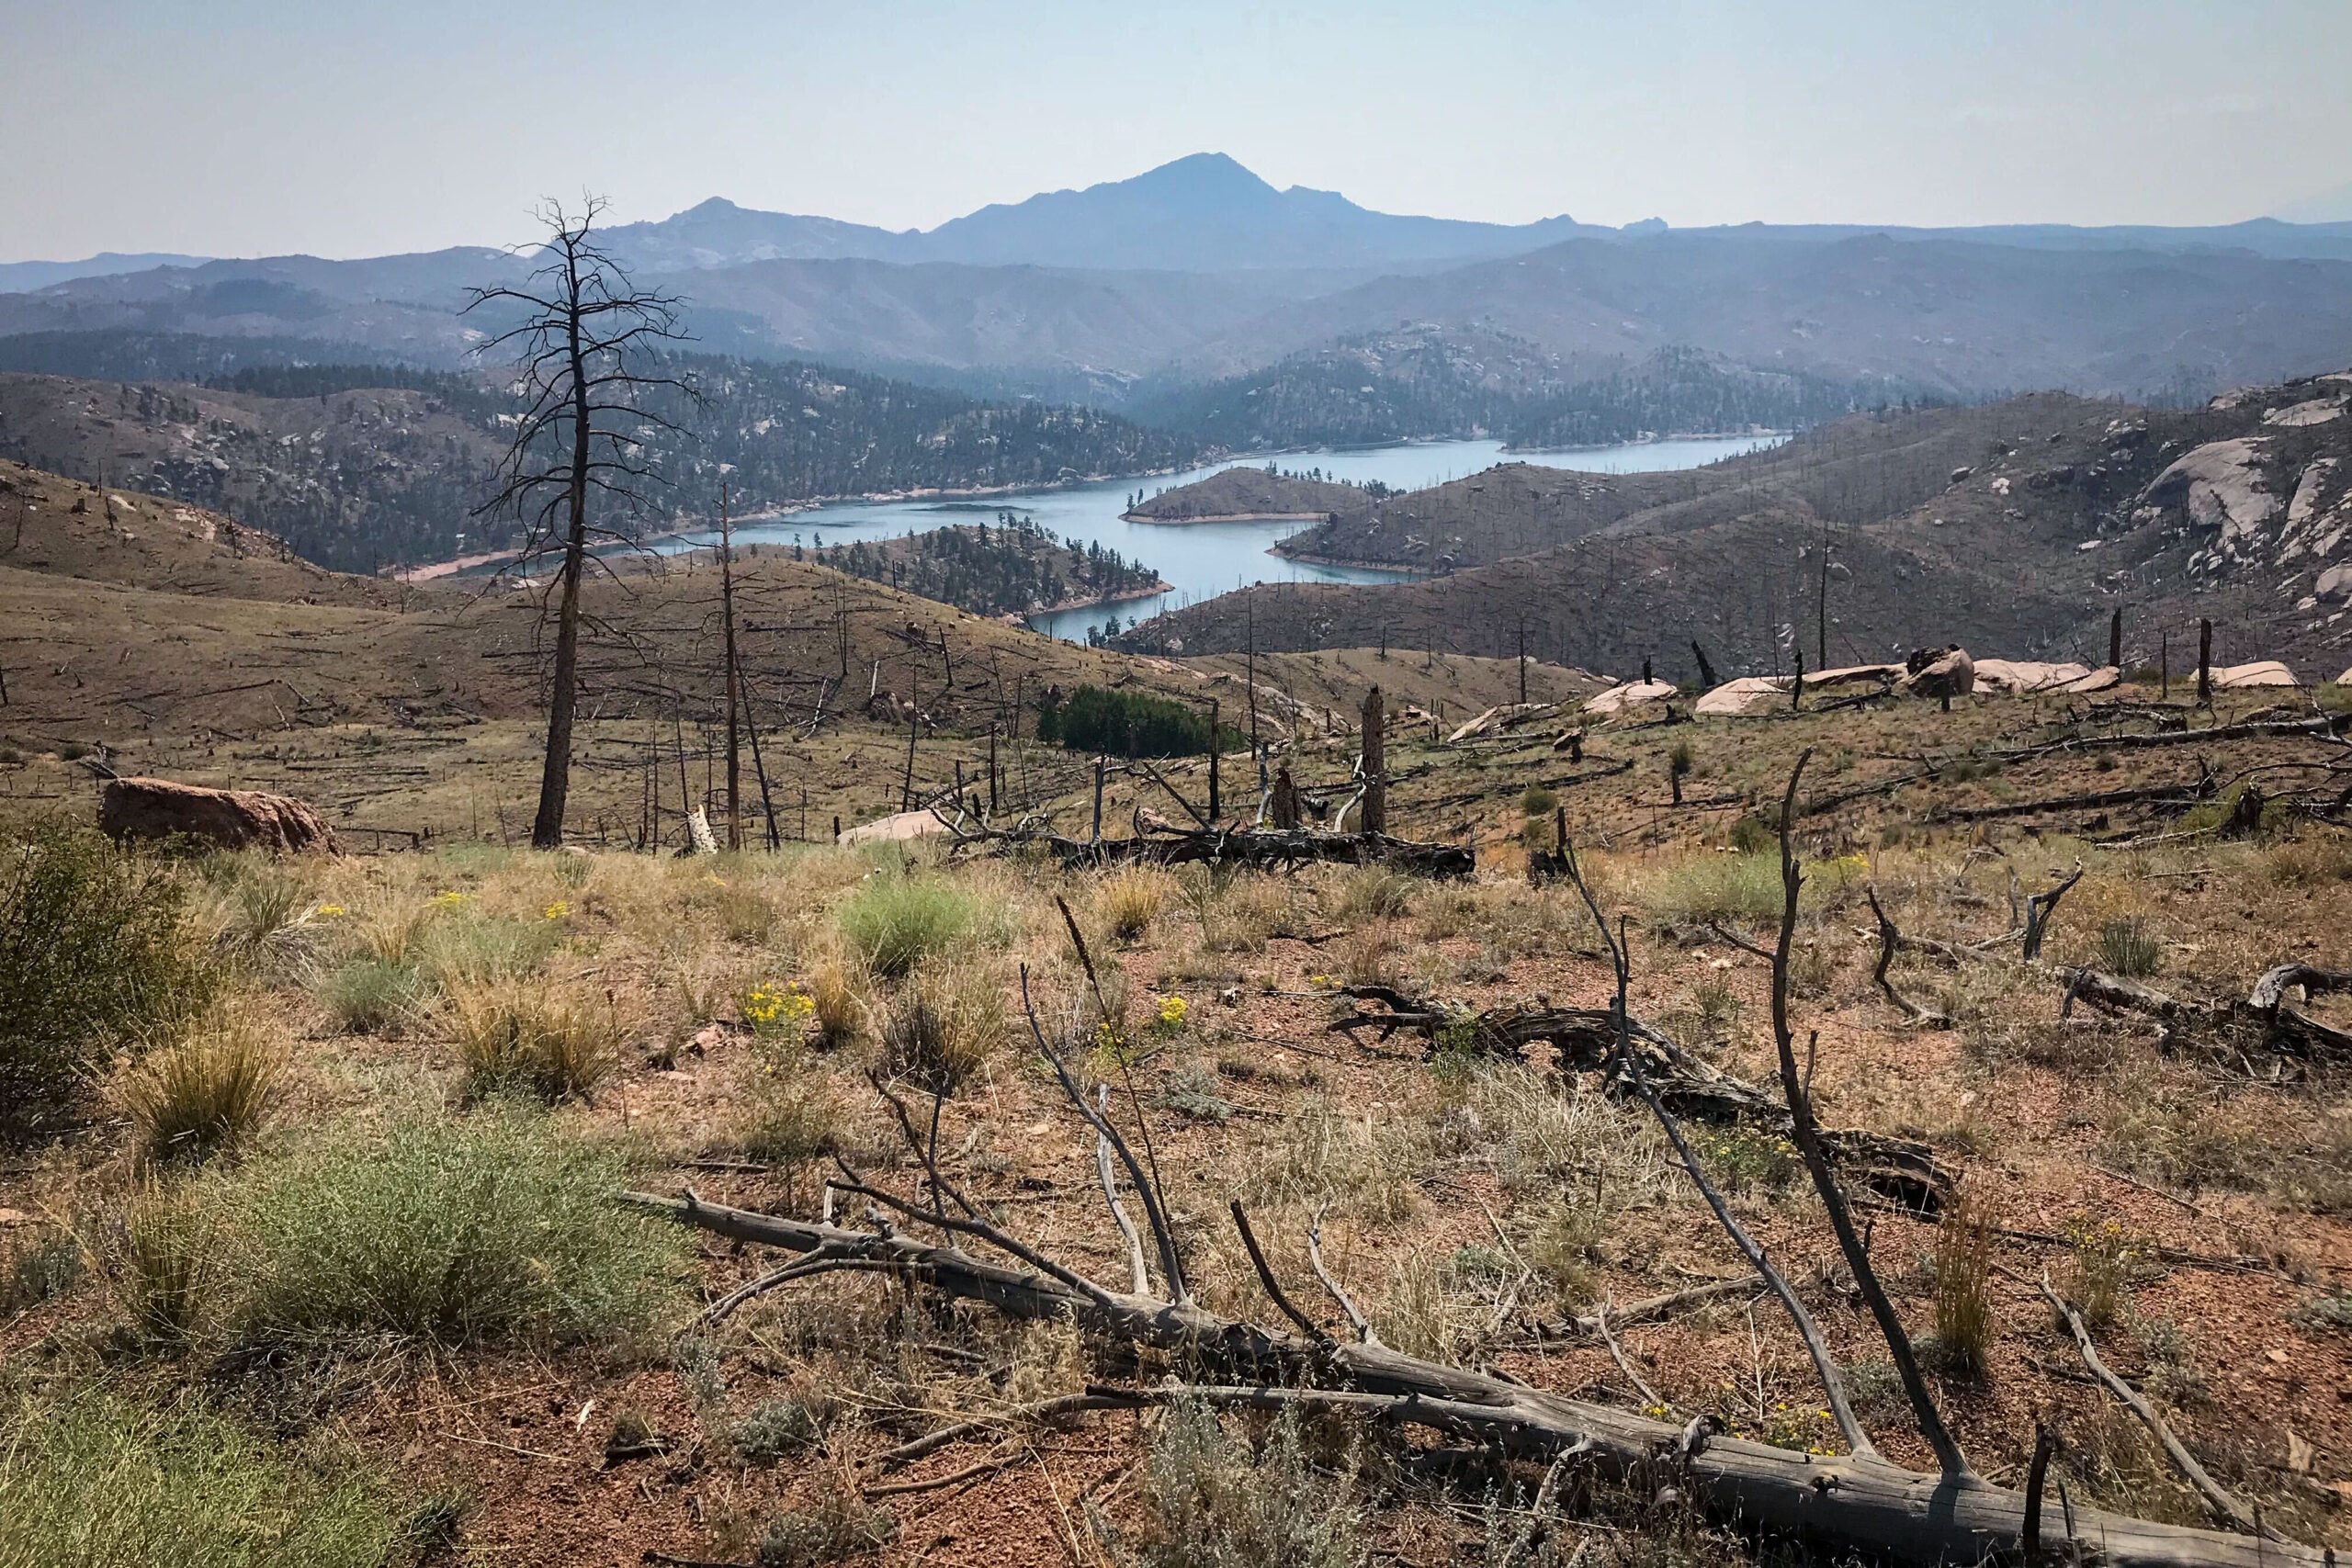 A high-severity burn area of the 2002 Hayman fire northwest of Colorado Springs, near Cheesman Lake, Aug. 26, 2020.